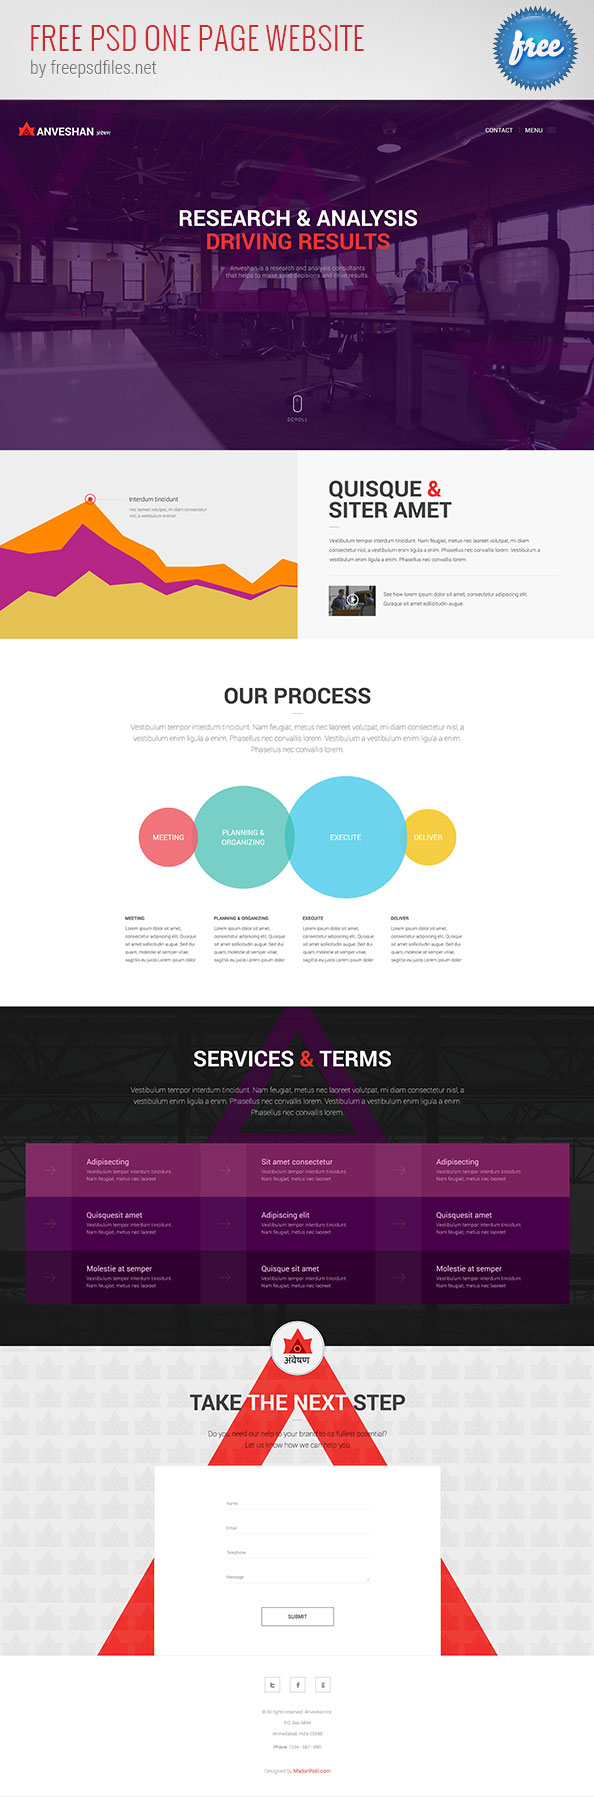 Free PSD One Page Website